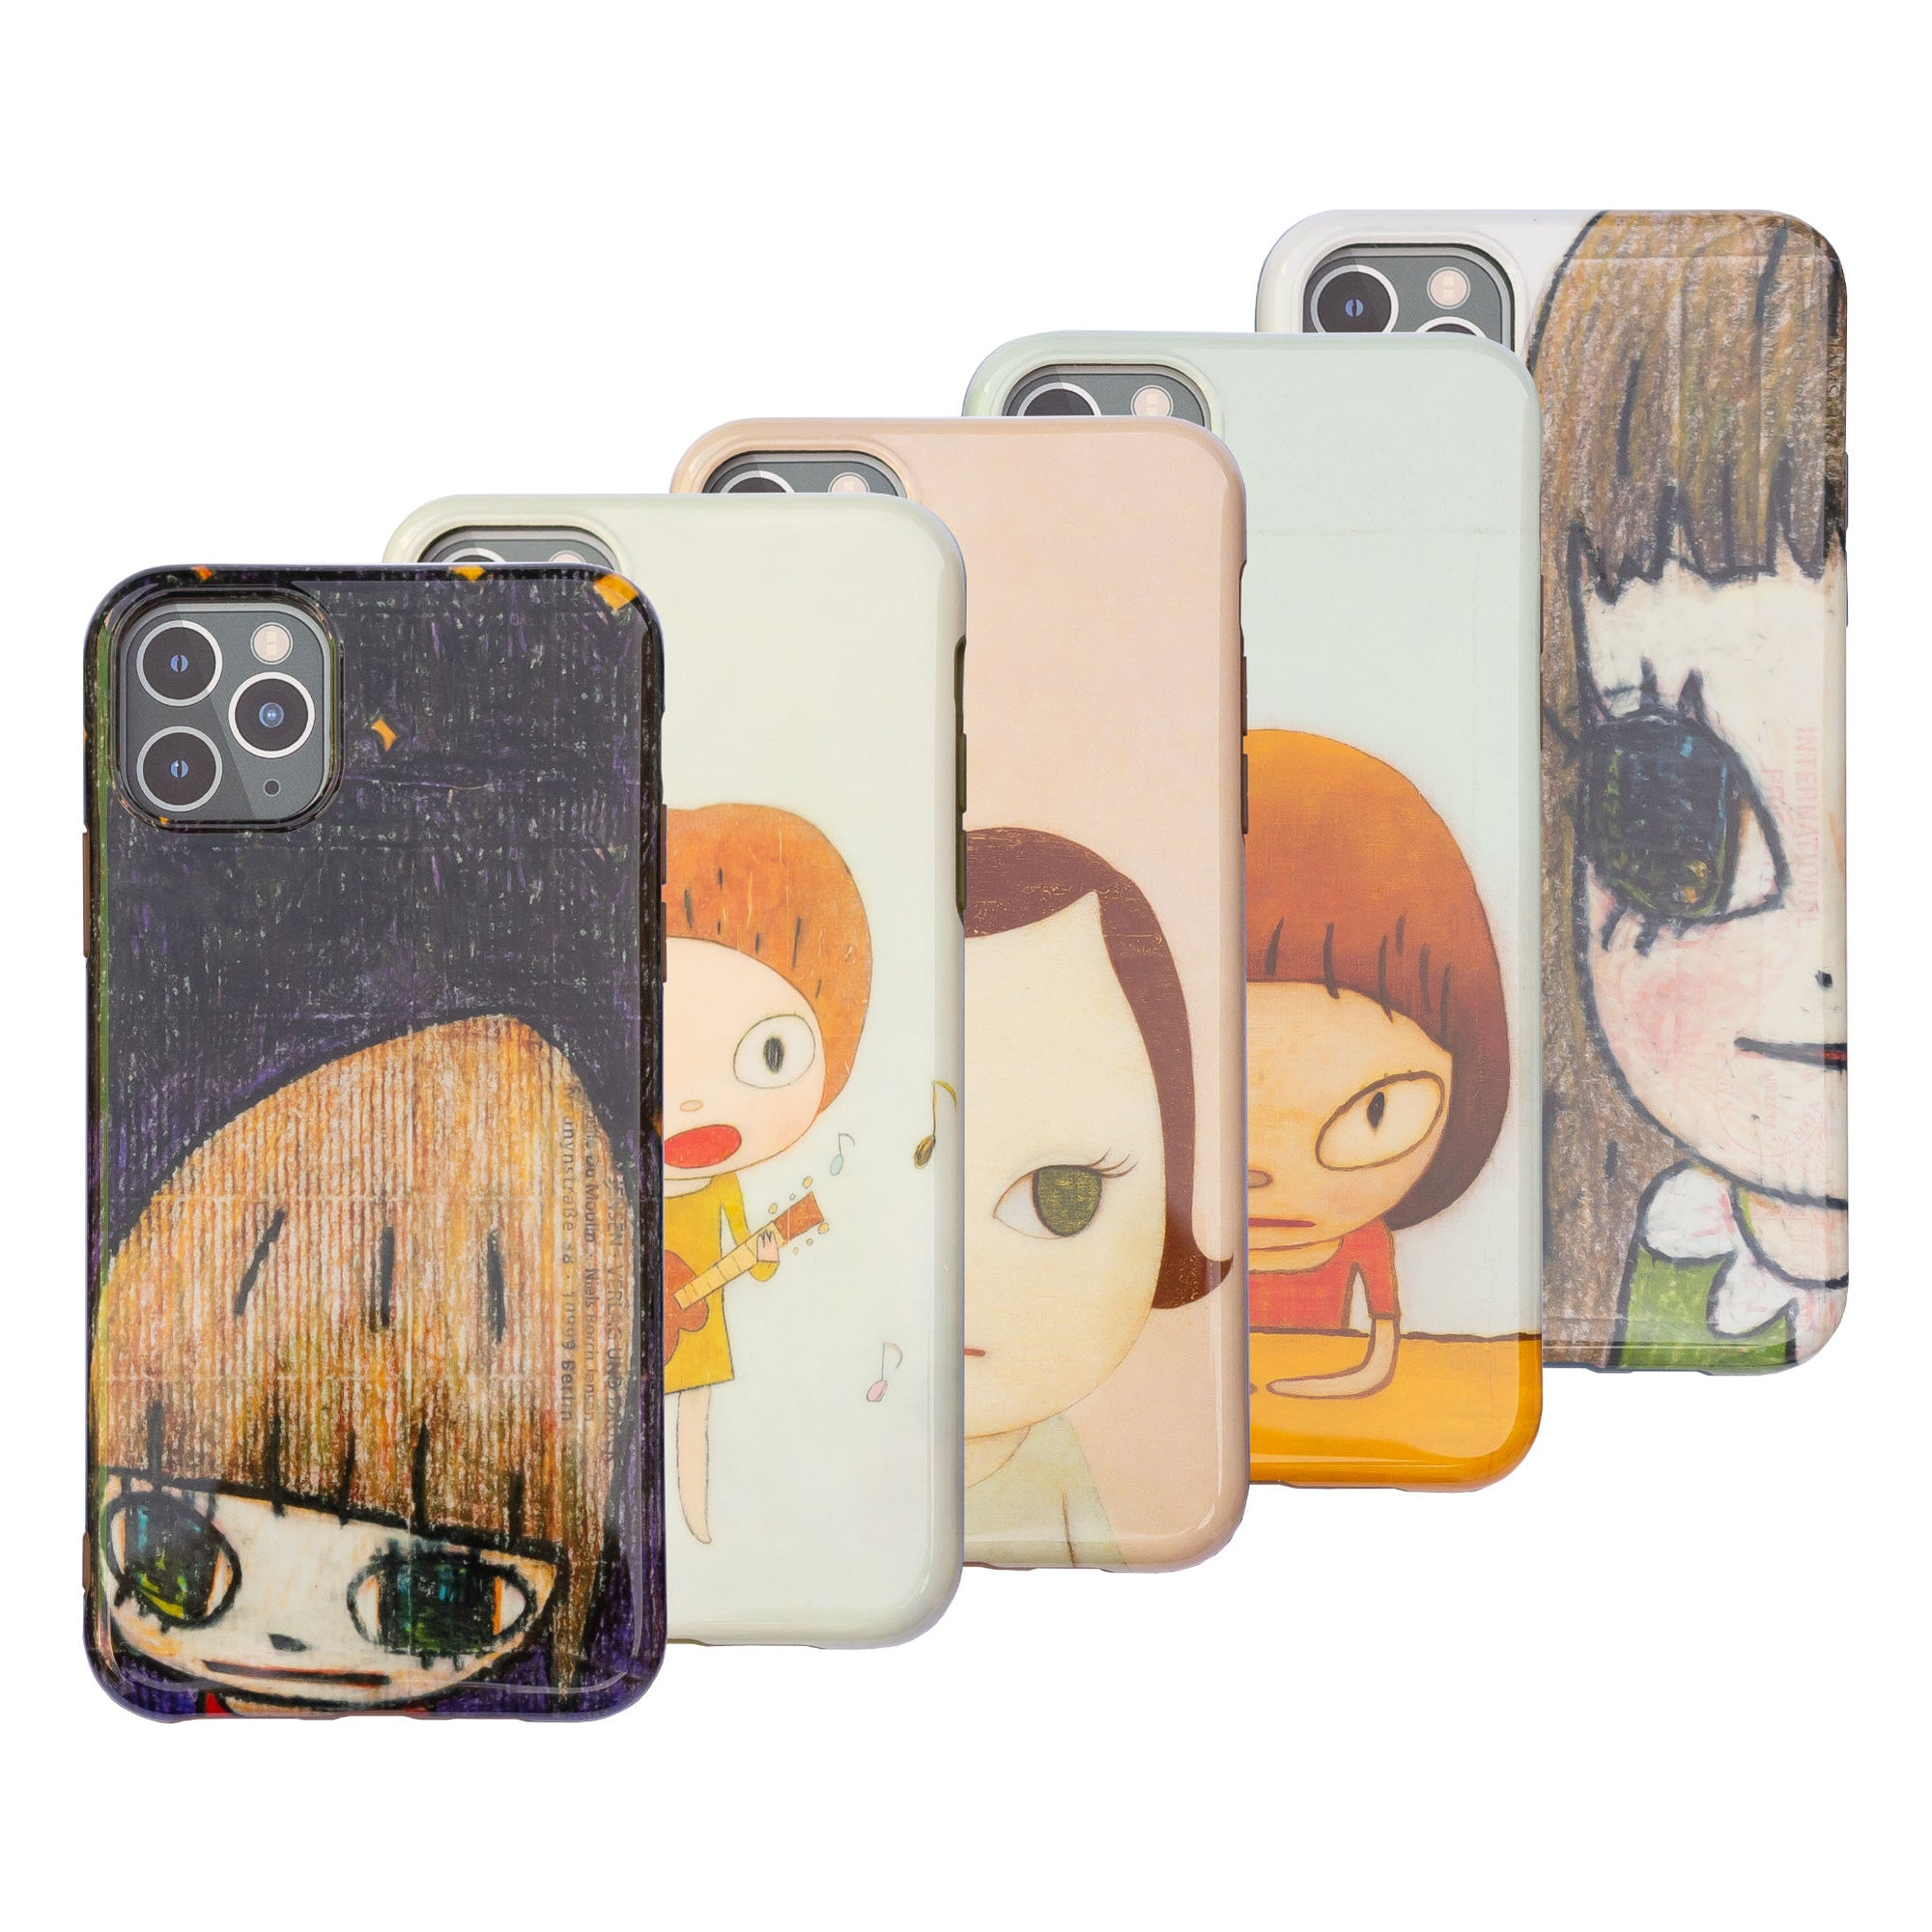 Yoshitomo Nara 2020 mobile case for iPhone 11 Pro Max, Full Set